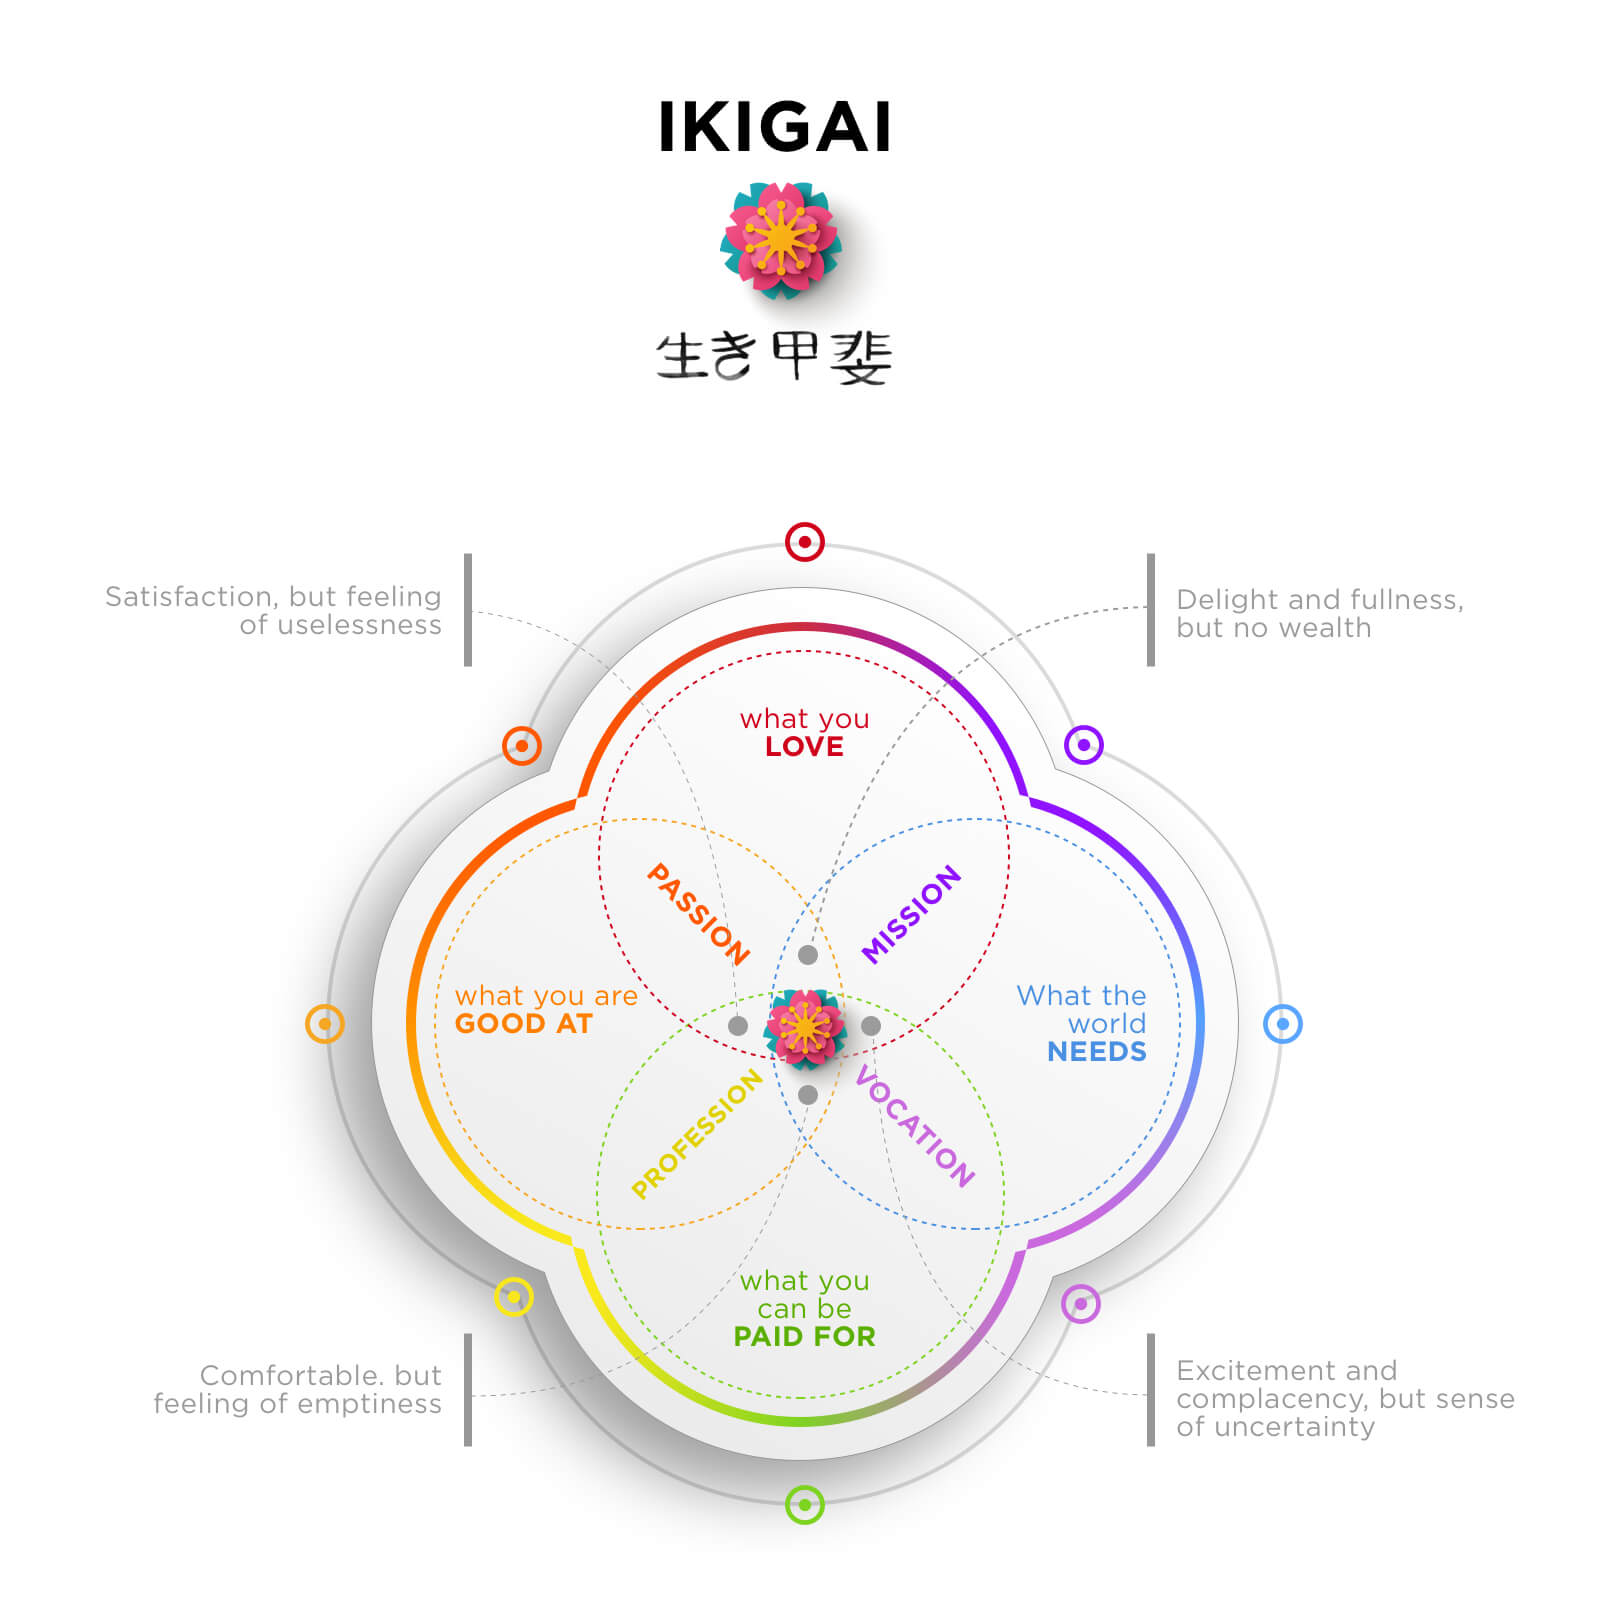 Ikigai – created by Ramo, That Sorted Life